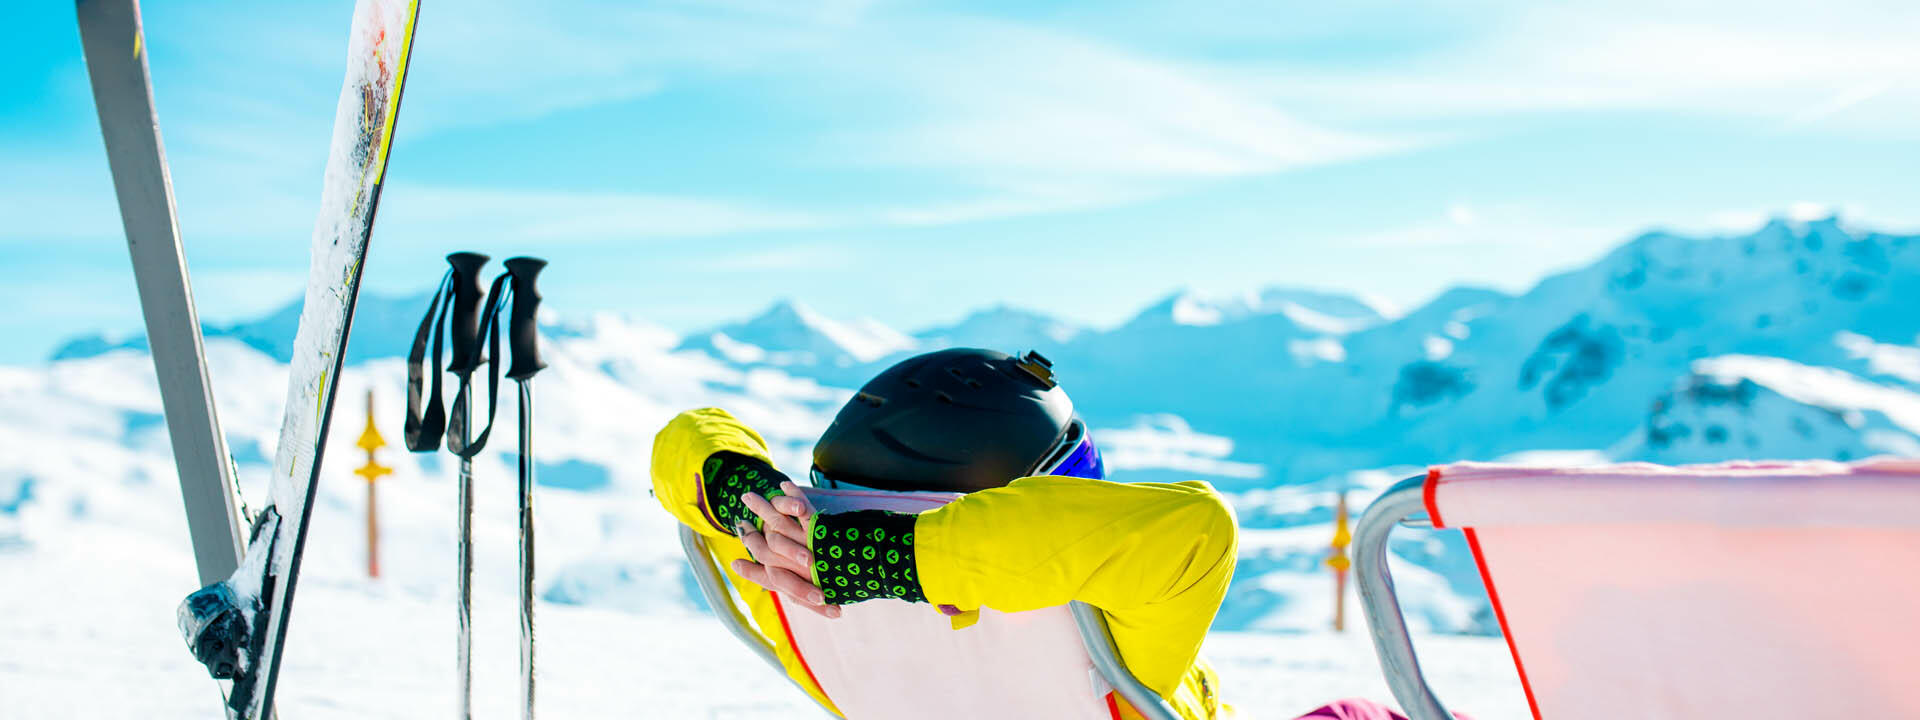 Winter holidays in the Alps for adventure seekers